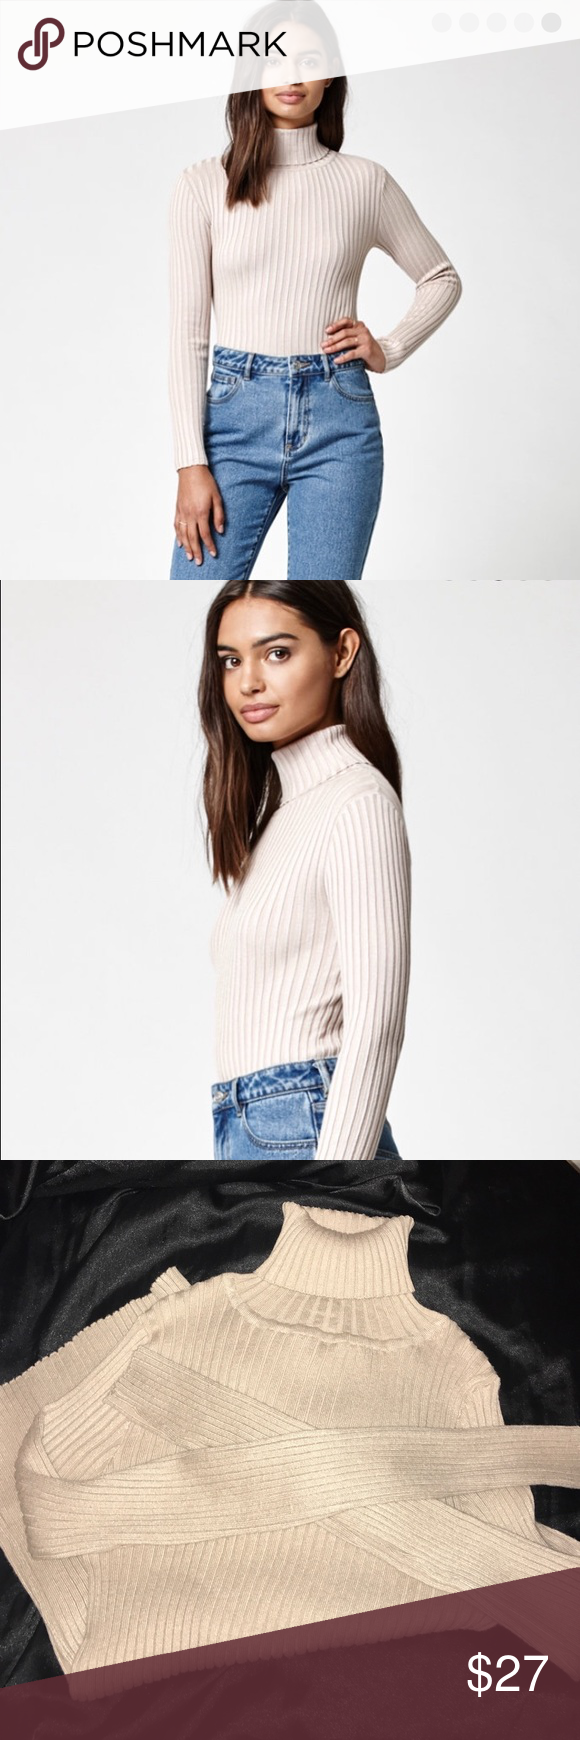 6557a53d8a0971 Kendall and Kylie ribbed turtleneck sweater Size medium. A bit too big for  me. Tan/cream color. This turtleneck sweater has cozy long sleeves and a  soft, ...